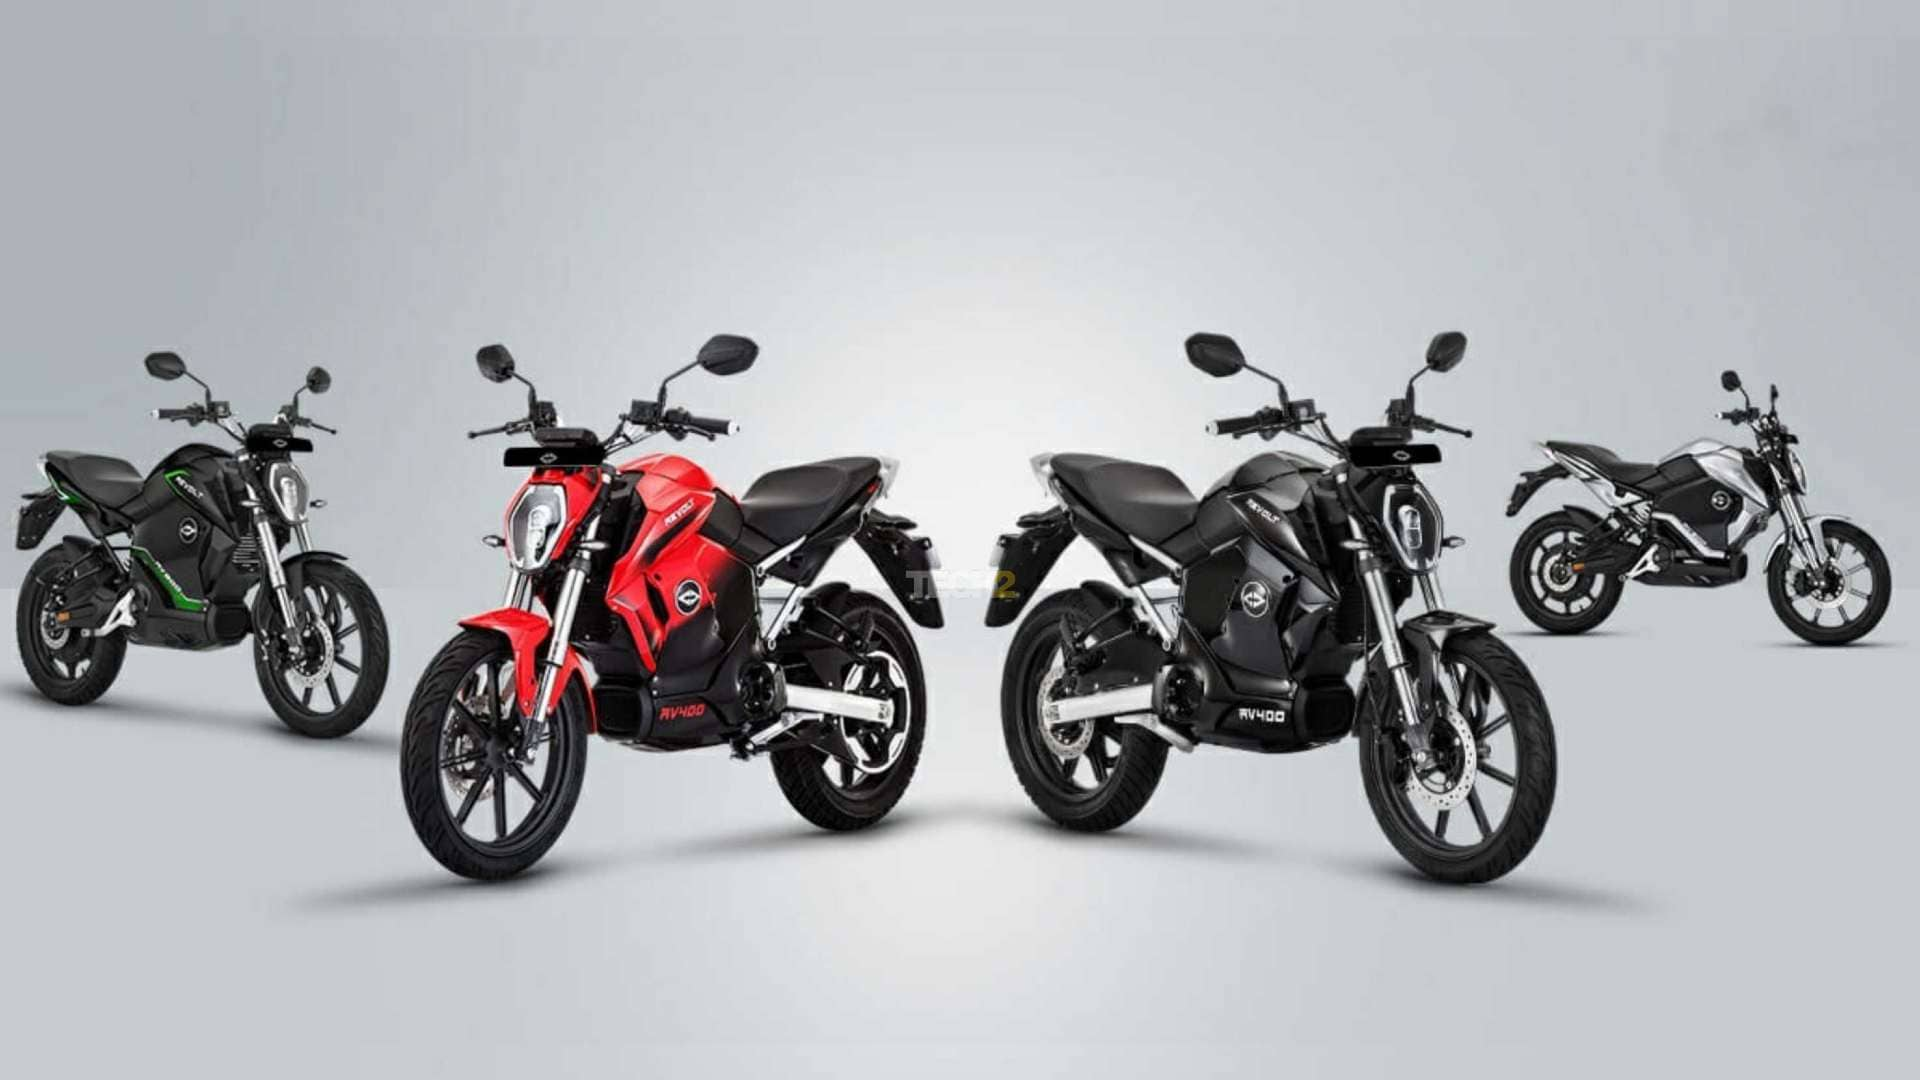 Prices for the Revolt RV300 and RV400 range from Rs 95,000 to Rs 1.19 lakh (ex-showroom). Image: Revolt Intellicorp